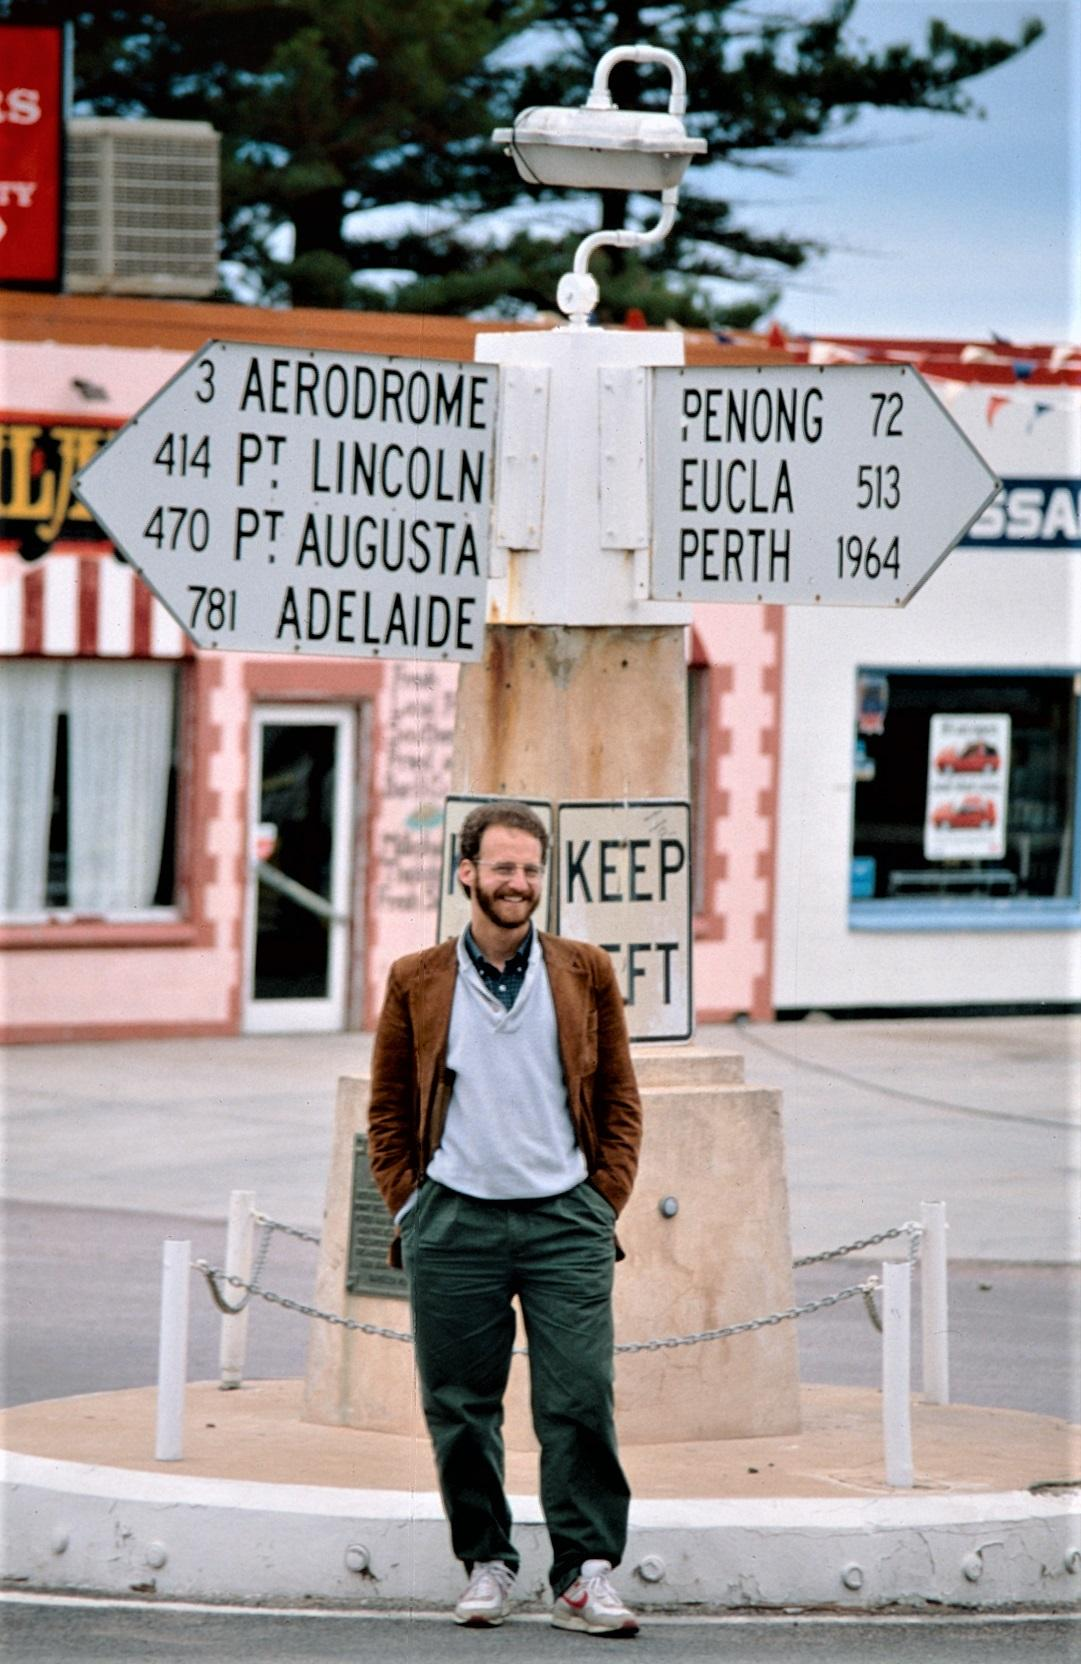 photo of Liebow visiting Australia for research